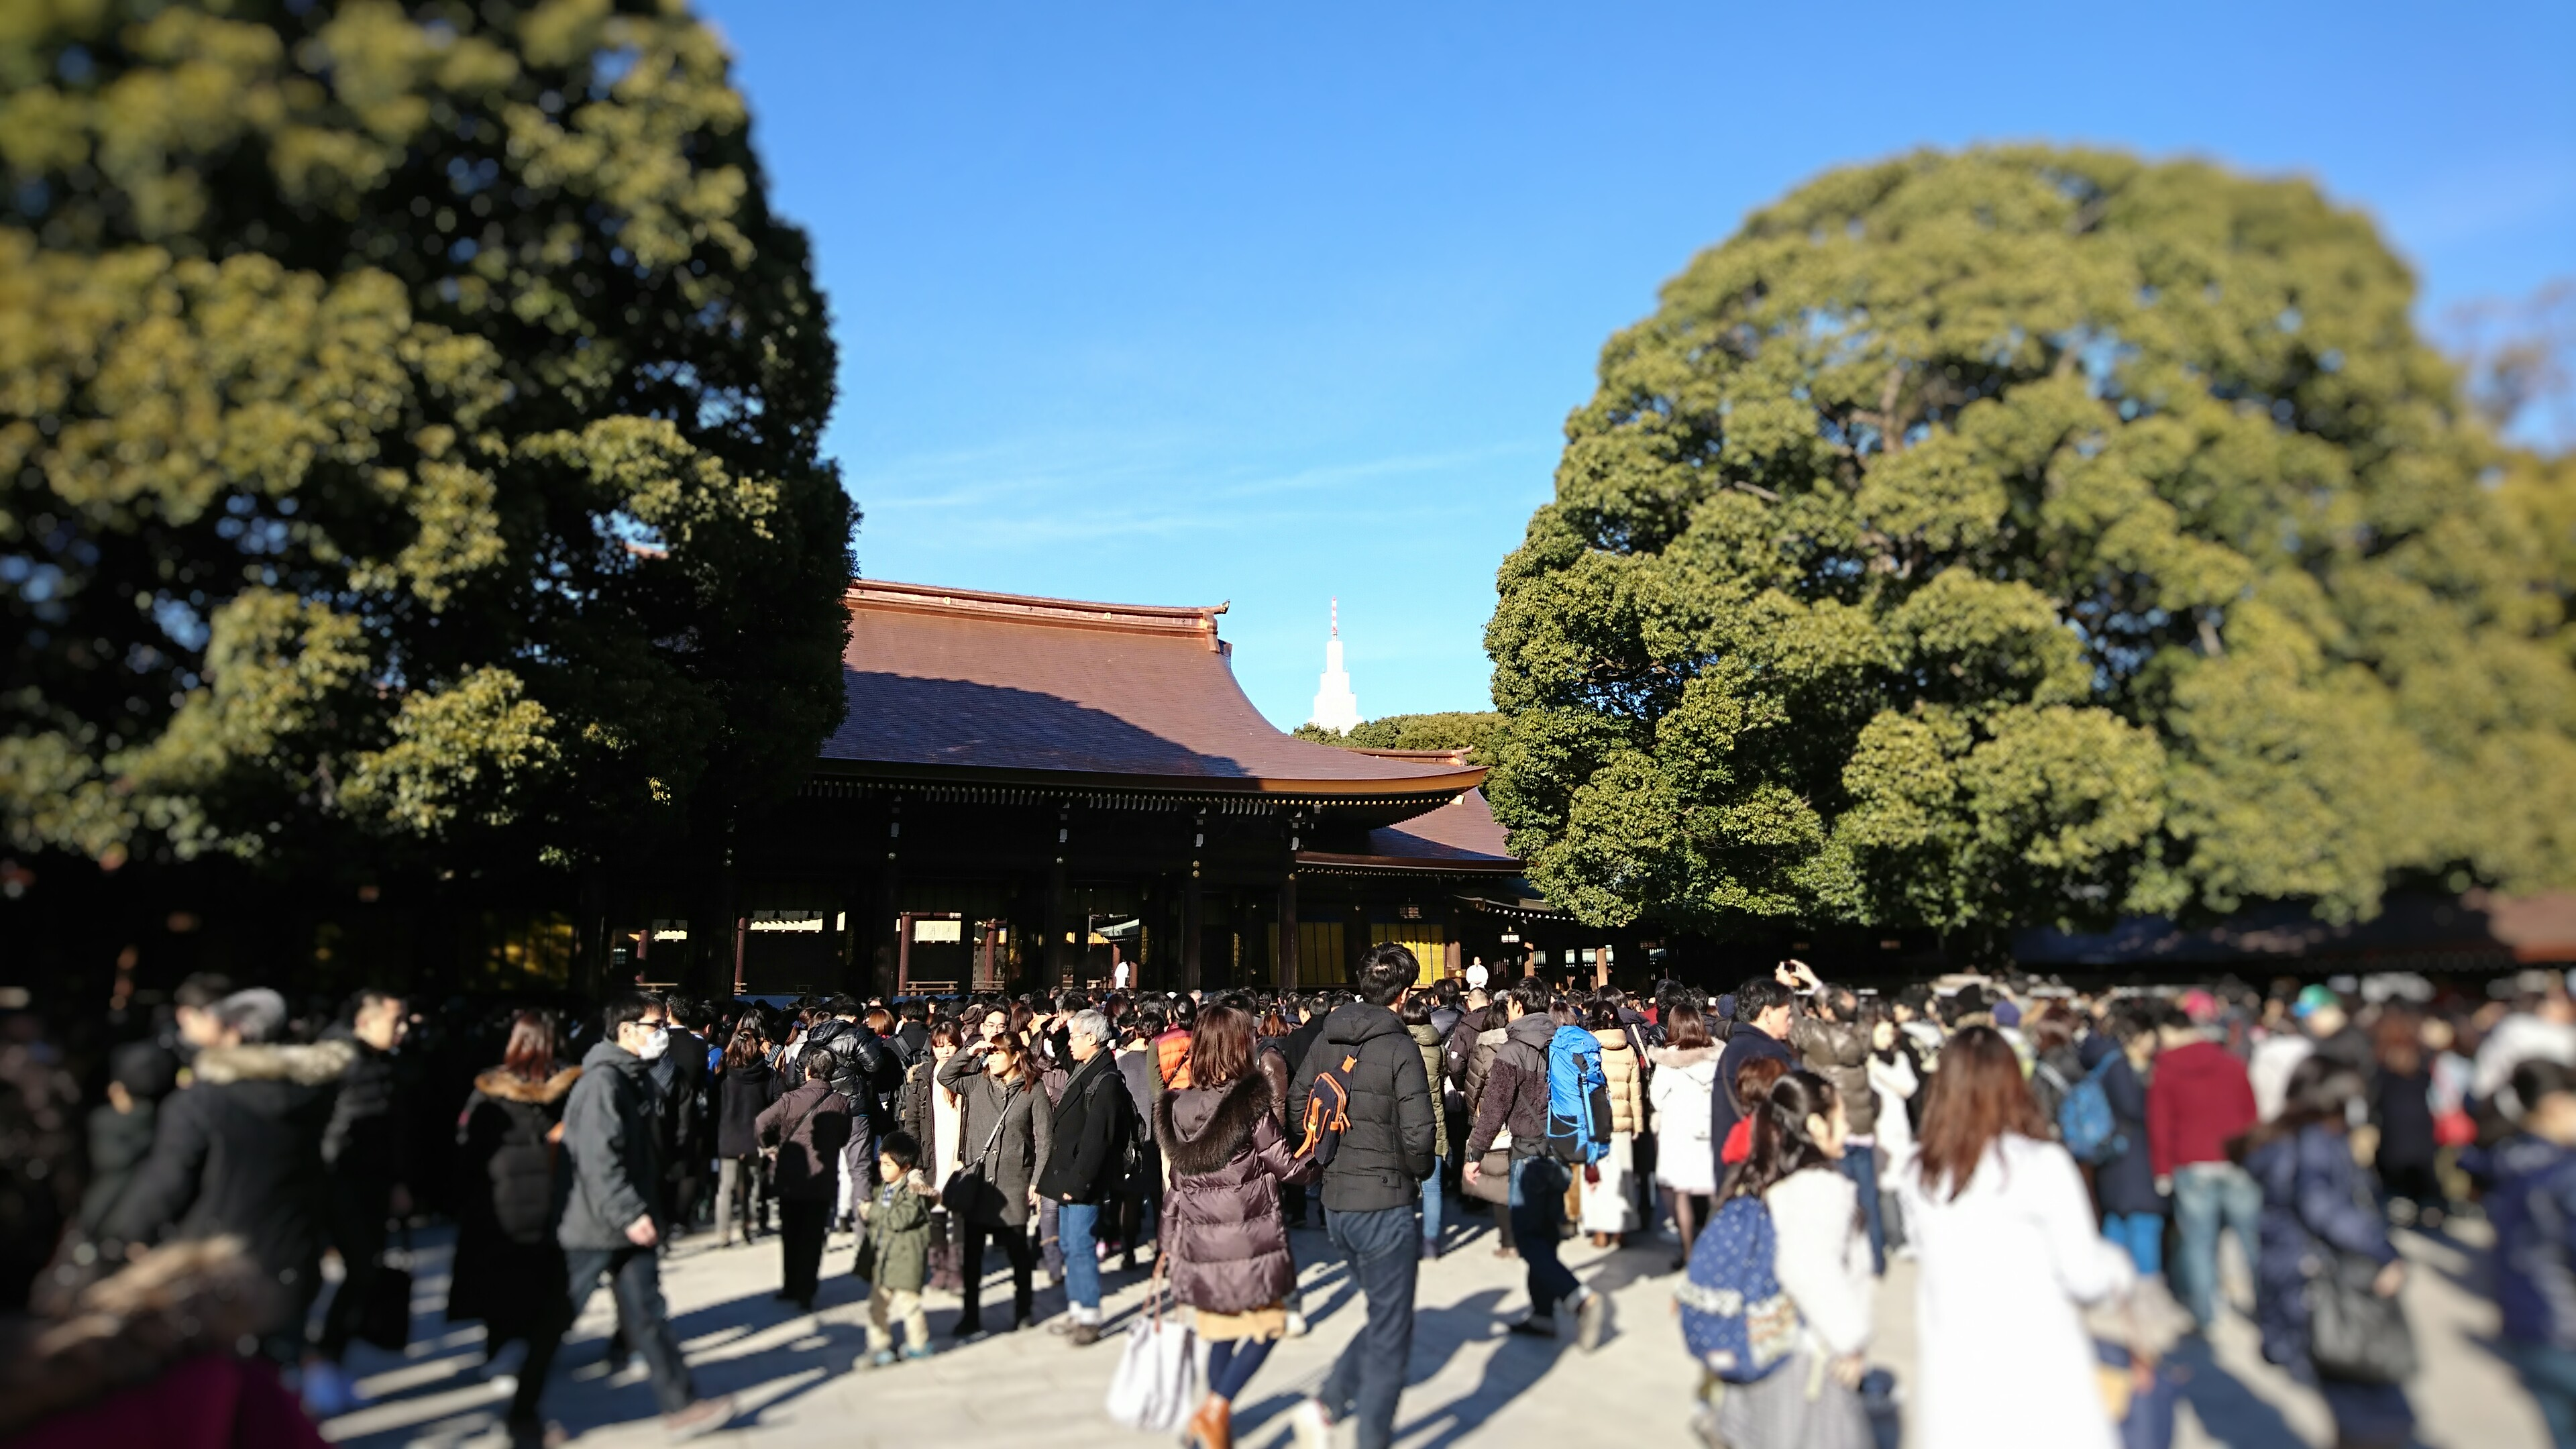 The main hall of Meiji Shirine in New Year 2018